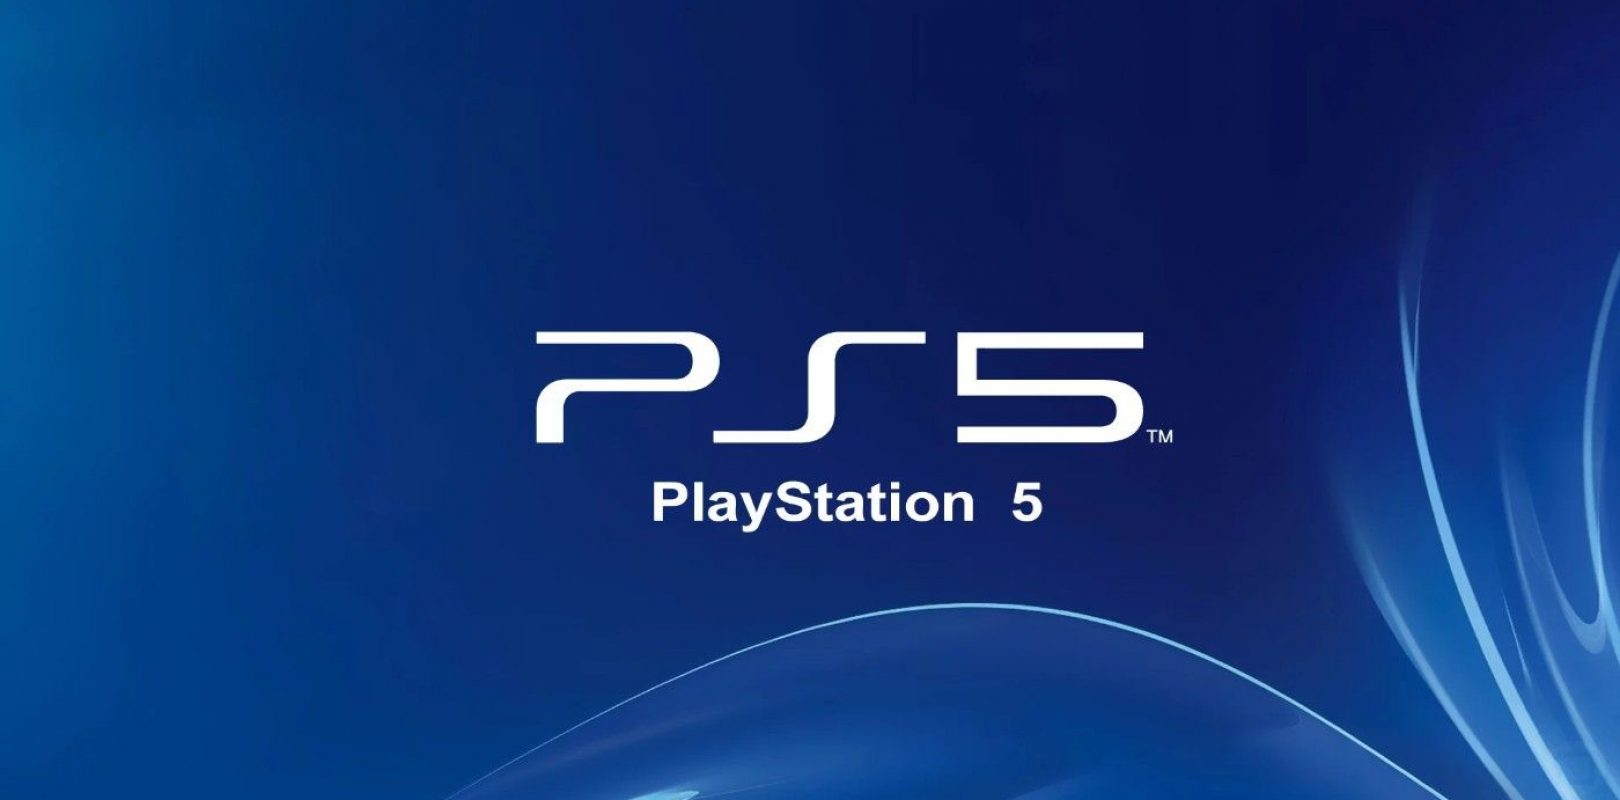 Gamestop Looks To Have Confirmed Ps5 Backwards Compatibility Through A Registration Page